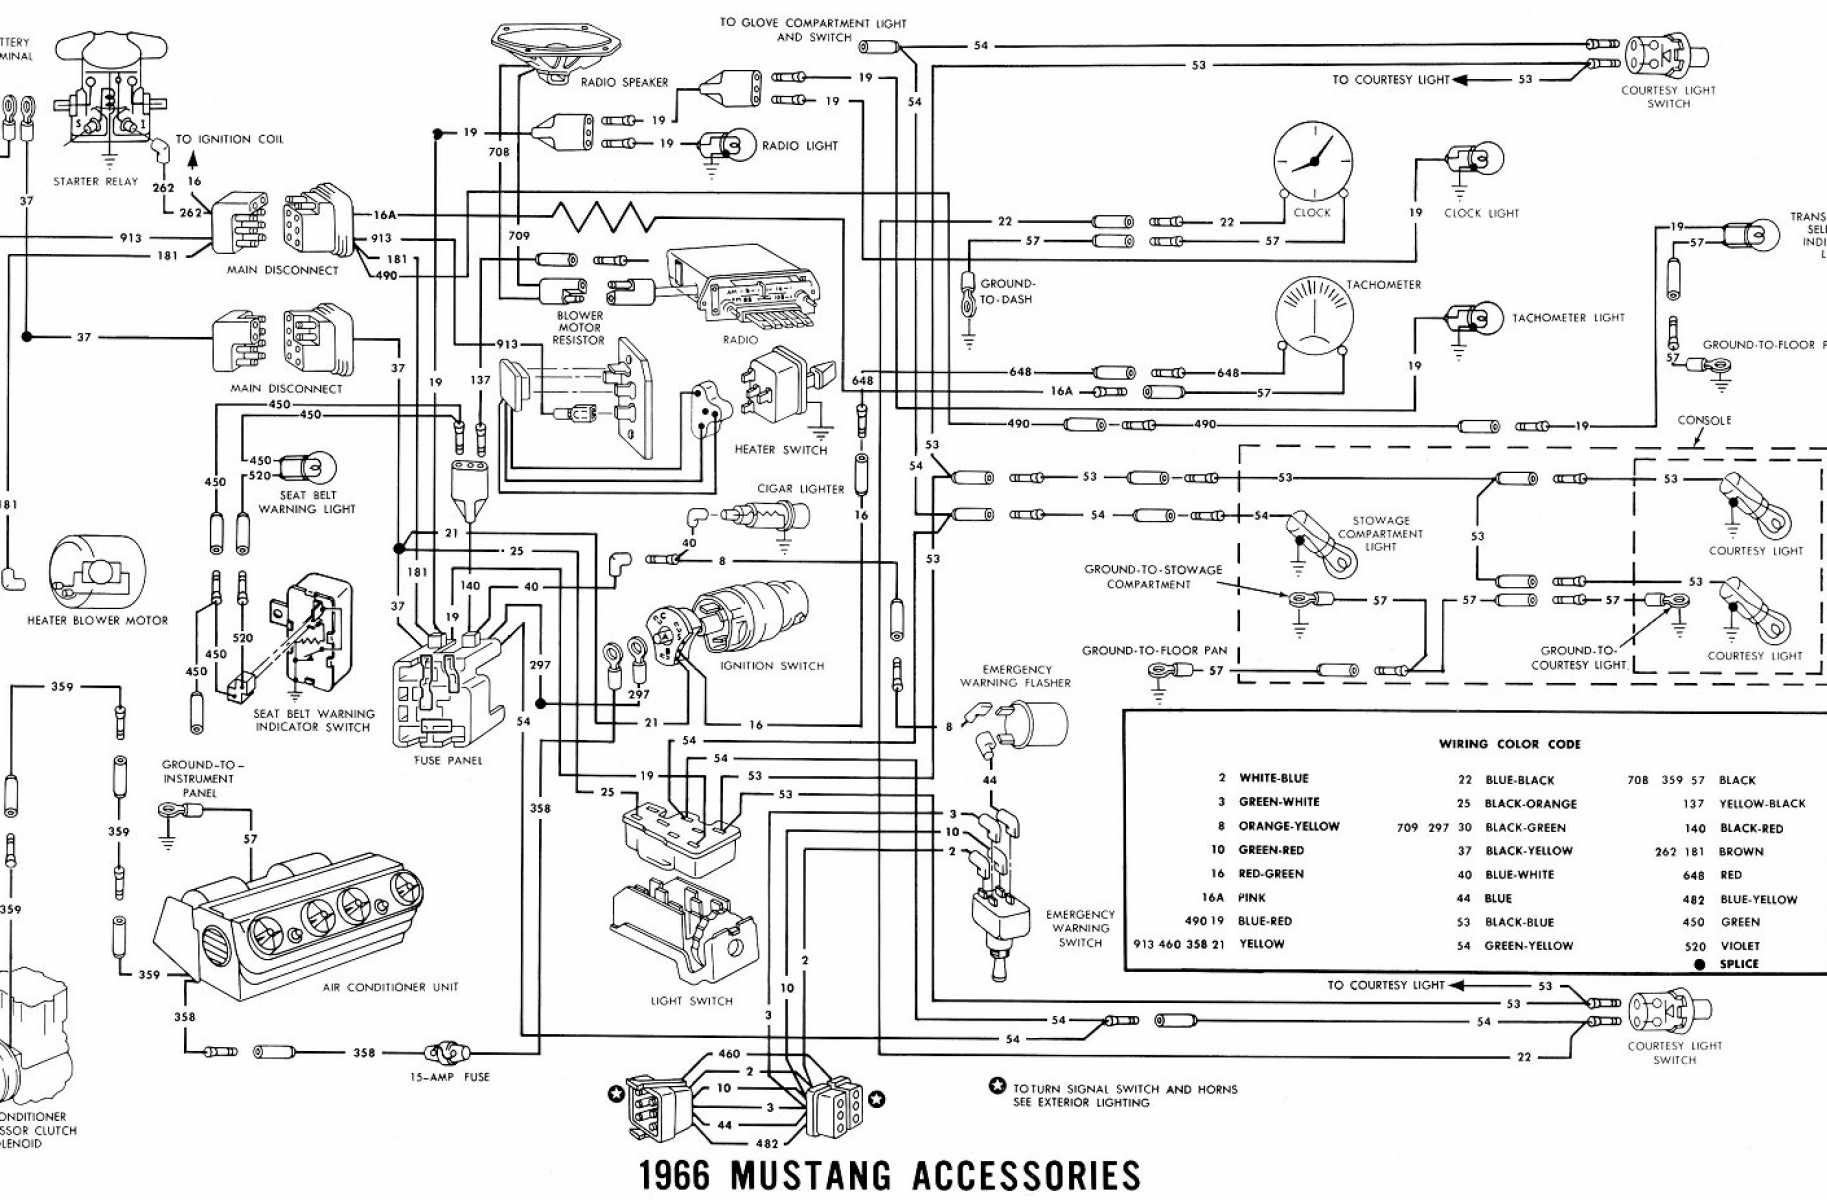 Western Pro Plow Wiring Diagram With Resistor on